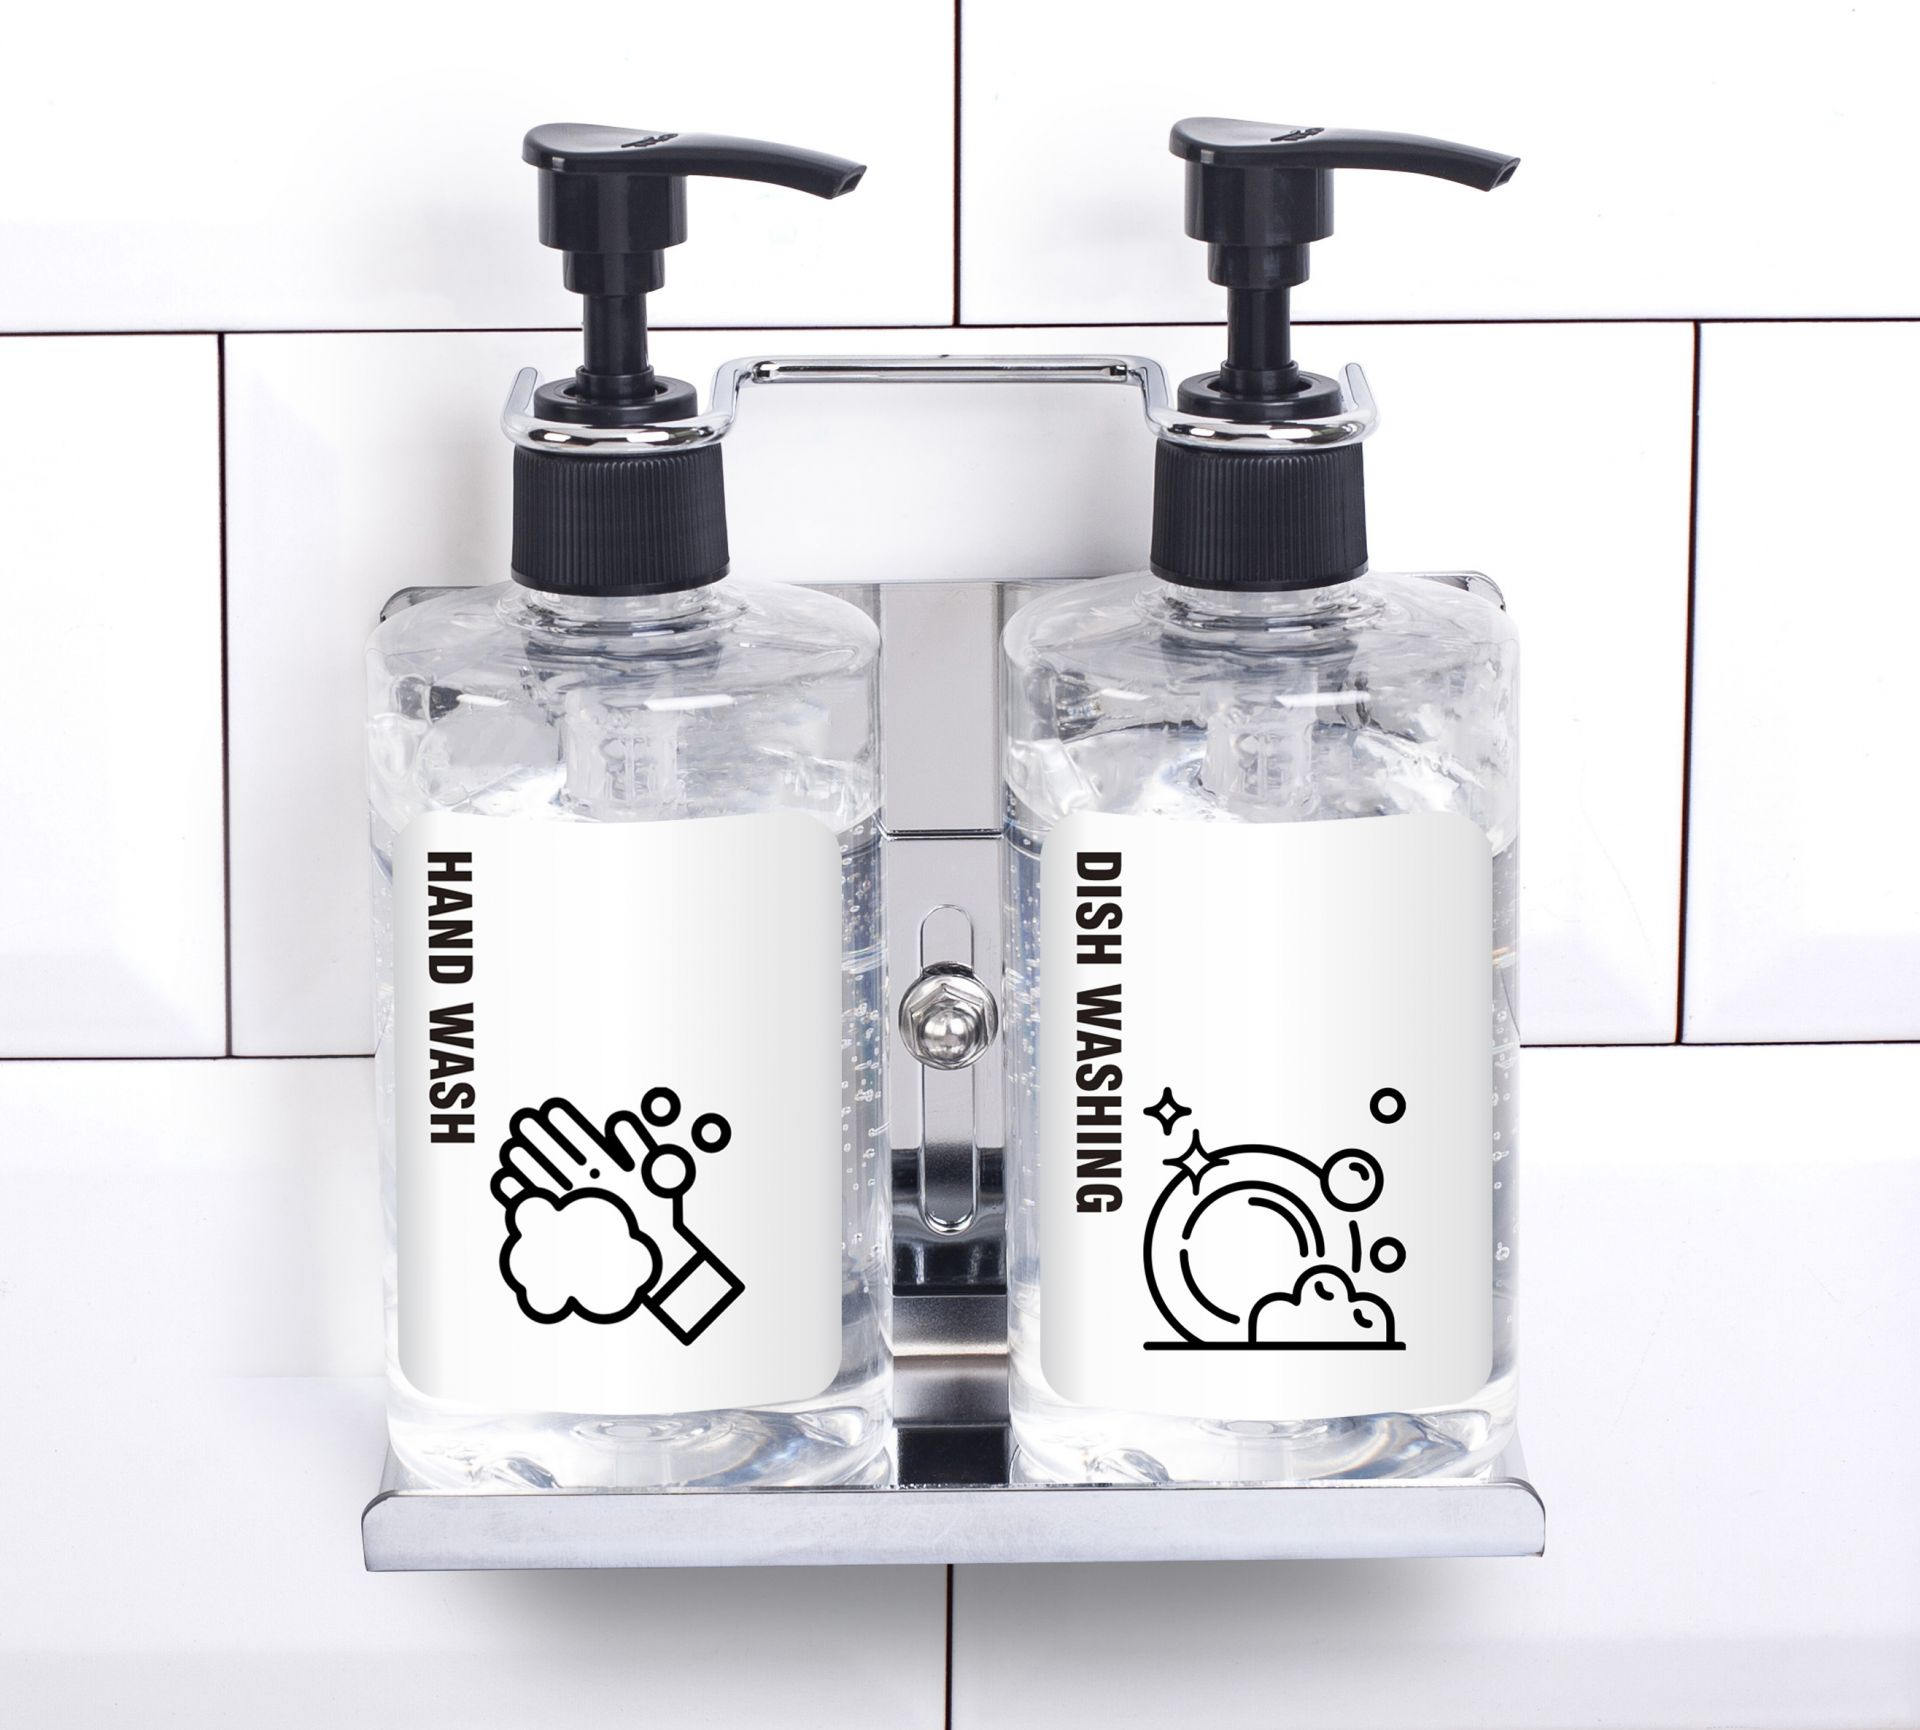 Stainless Steel Refillable Dual Soap Dispenser Holder